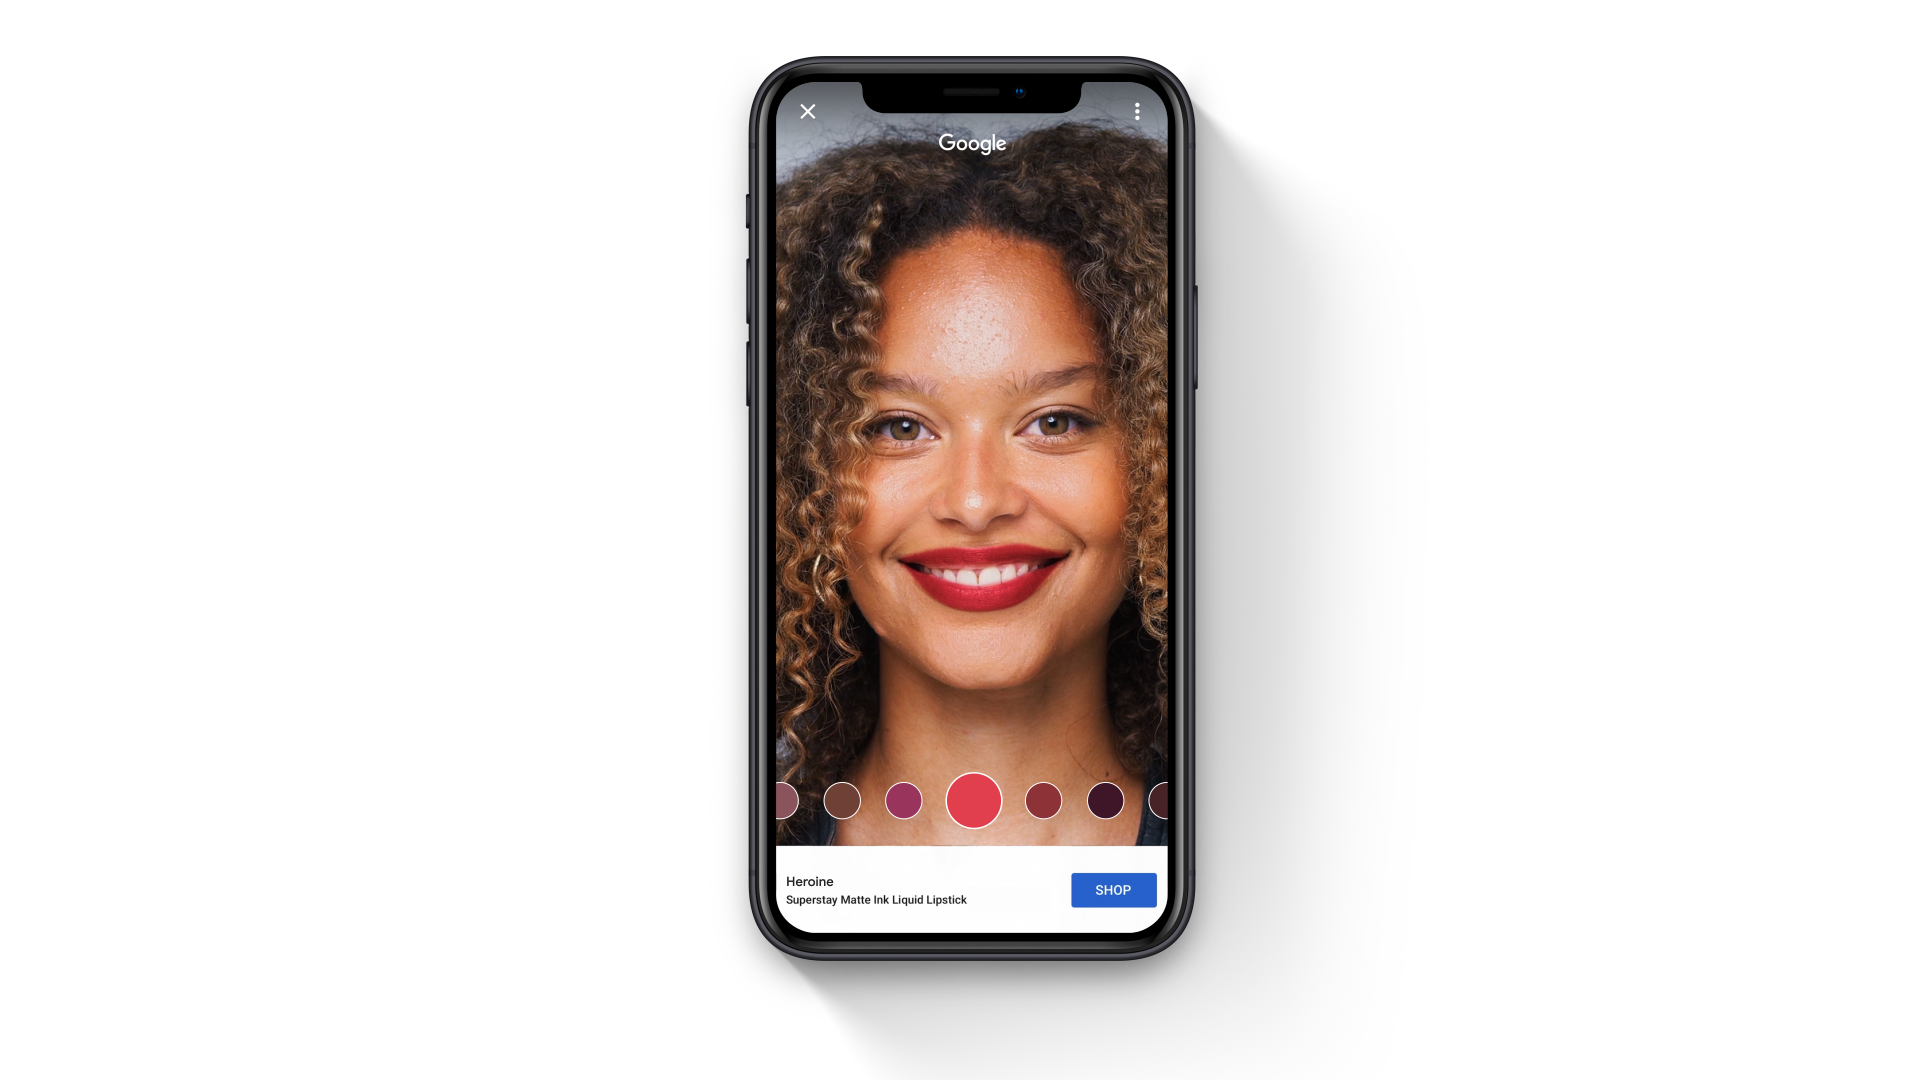 Augmented reality makeup try-ons are coming to Google Search.